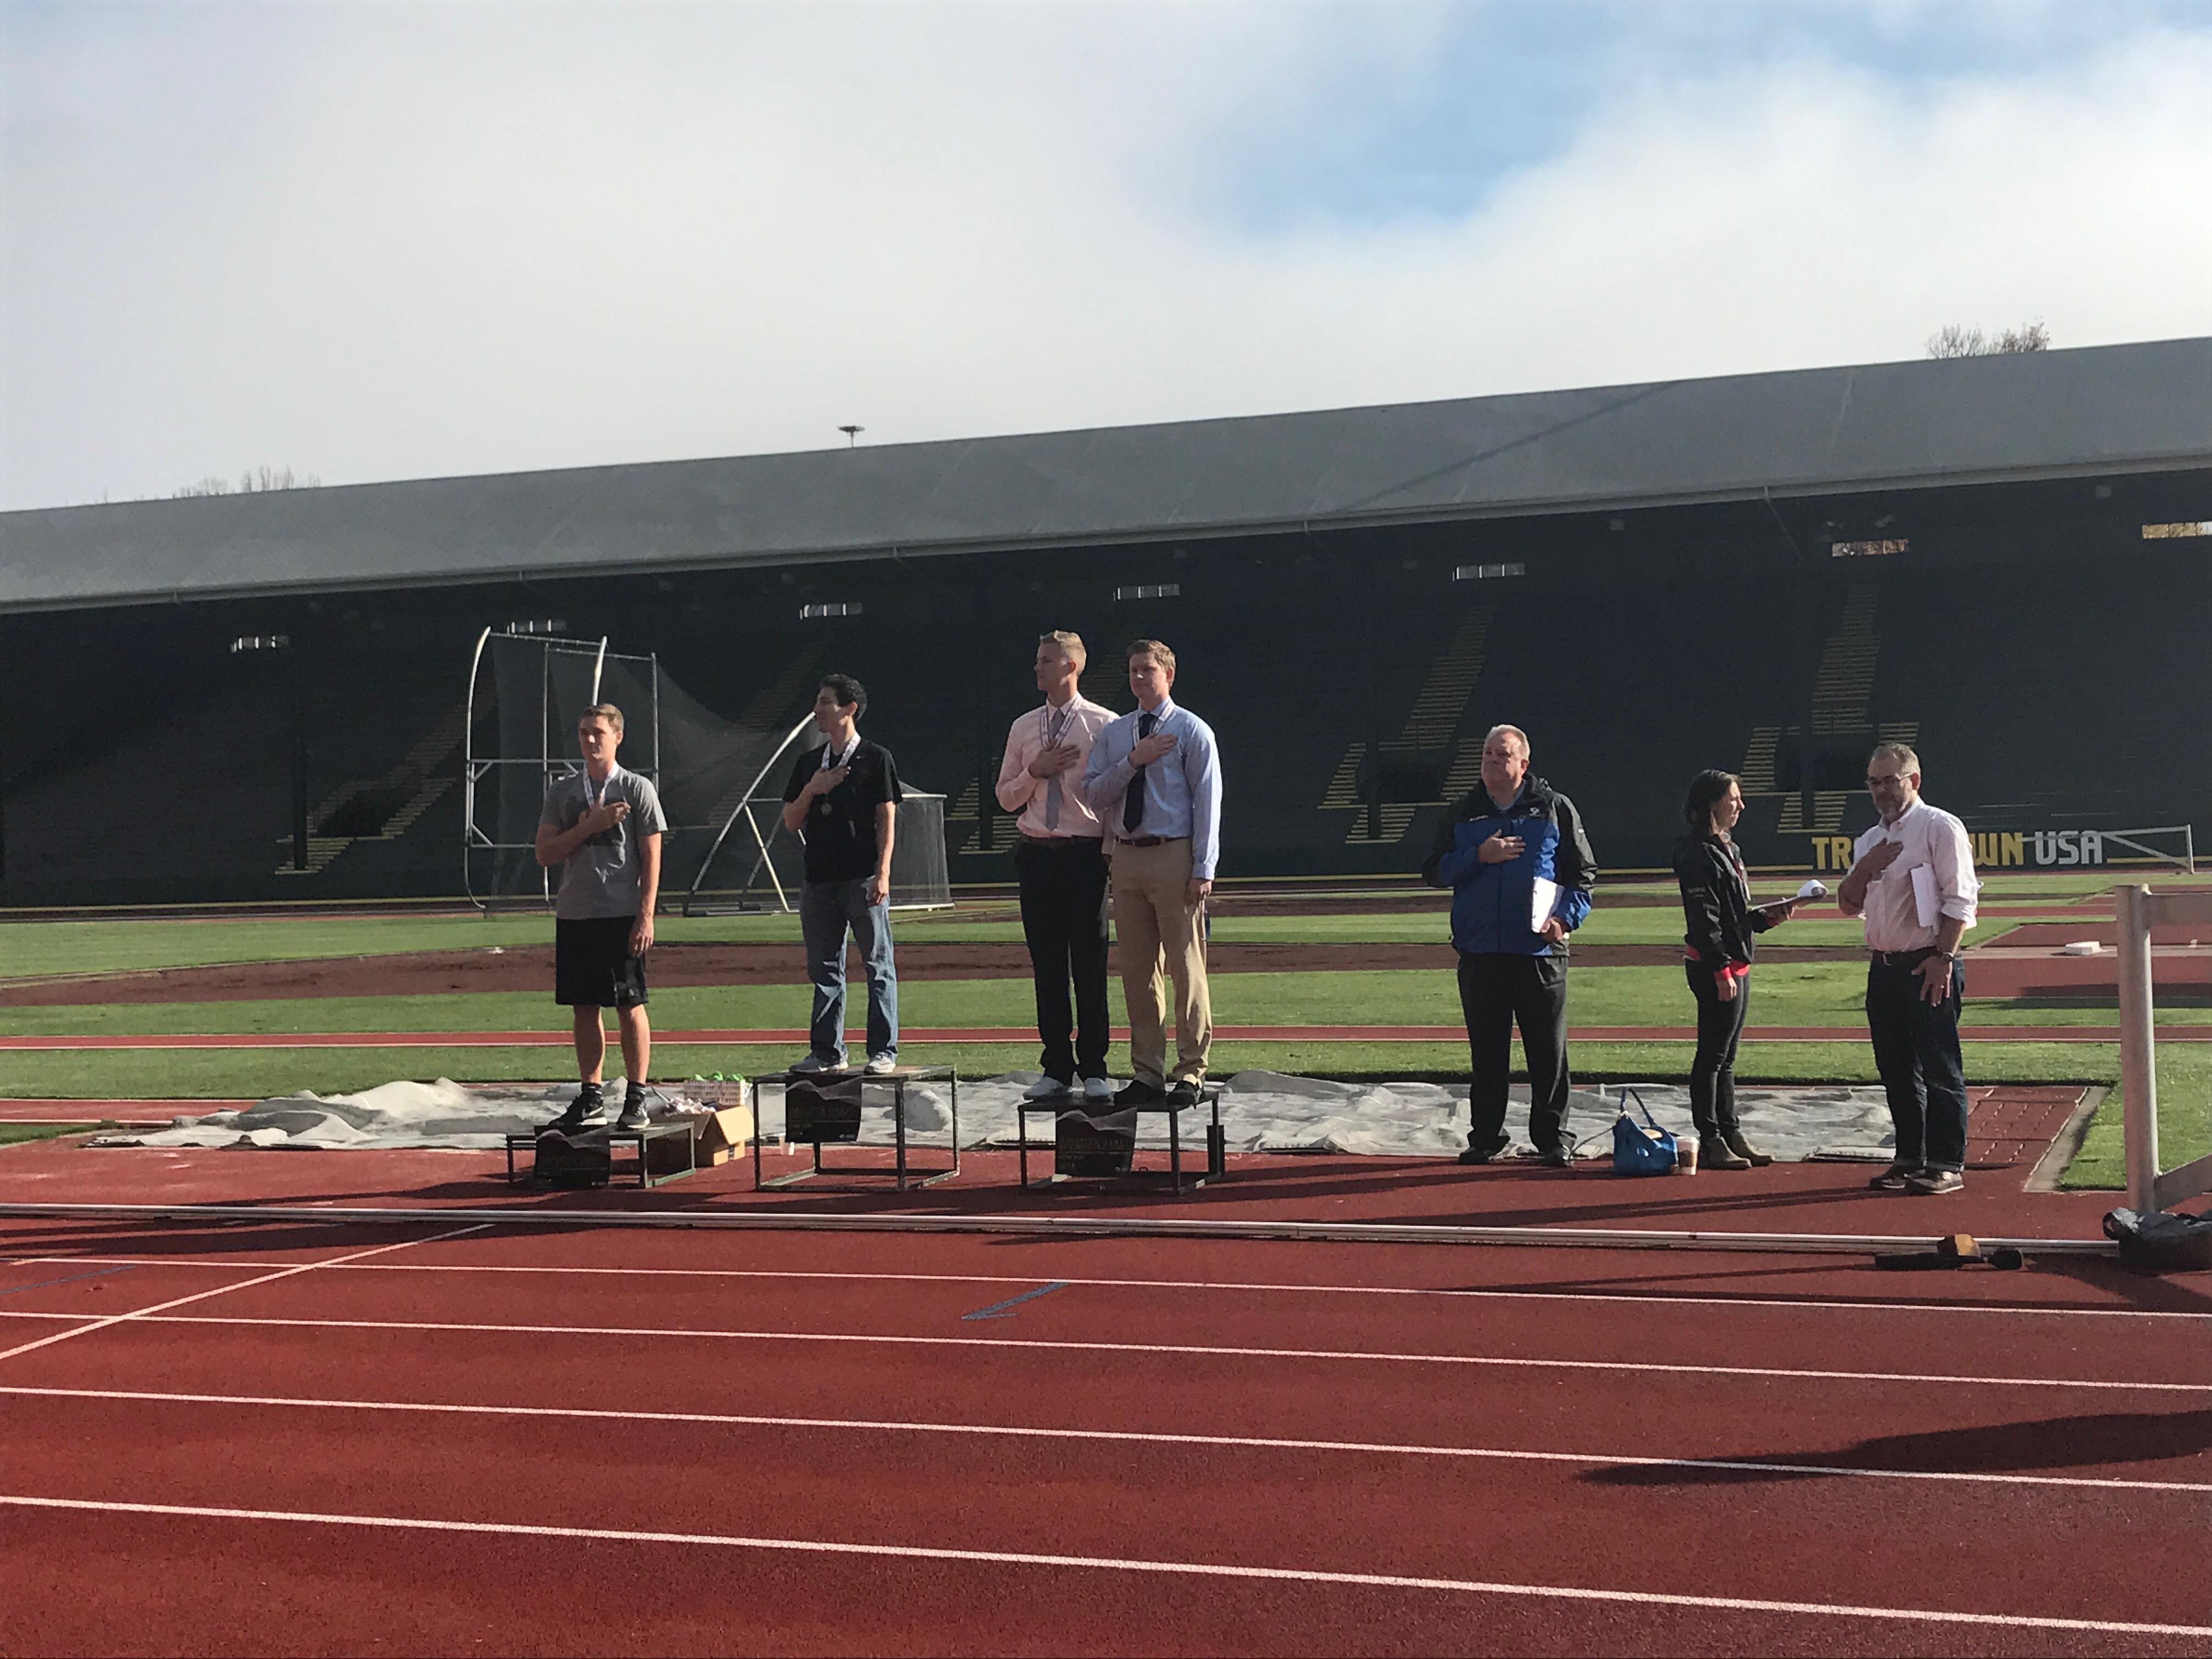 Top 3 winners for the Quack Track Pitch{&amp;nbsp;} on October 27th, 2017. at Hayward Field in Eugene, Ore.{&amp;nbsp;}{&amp;nbsp;}<p></p>